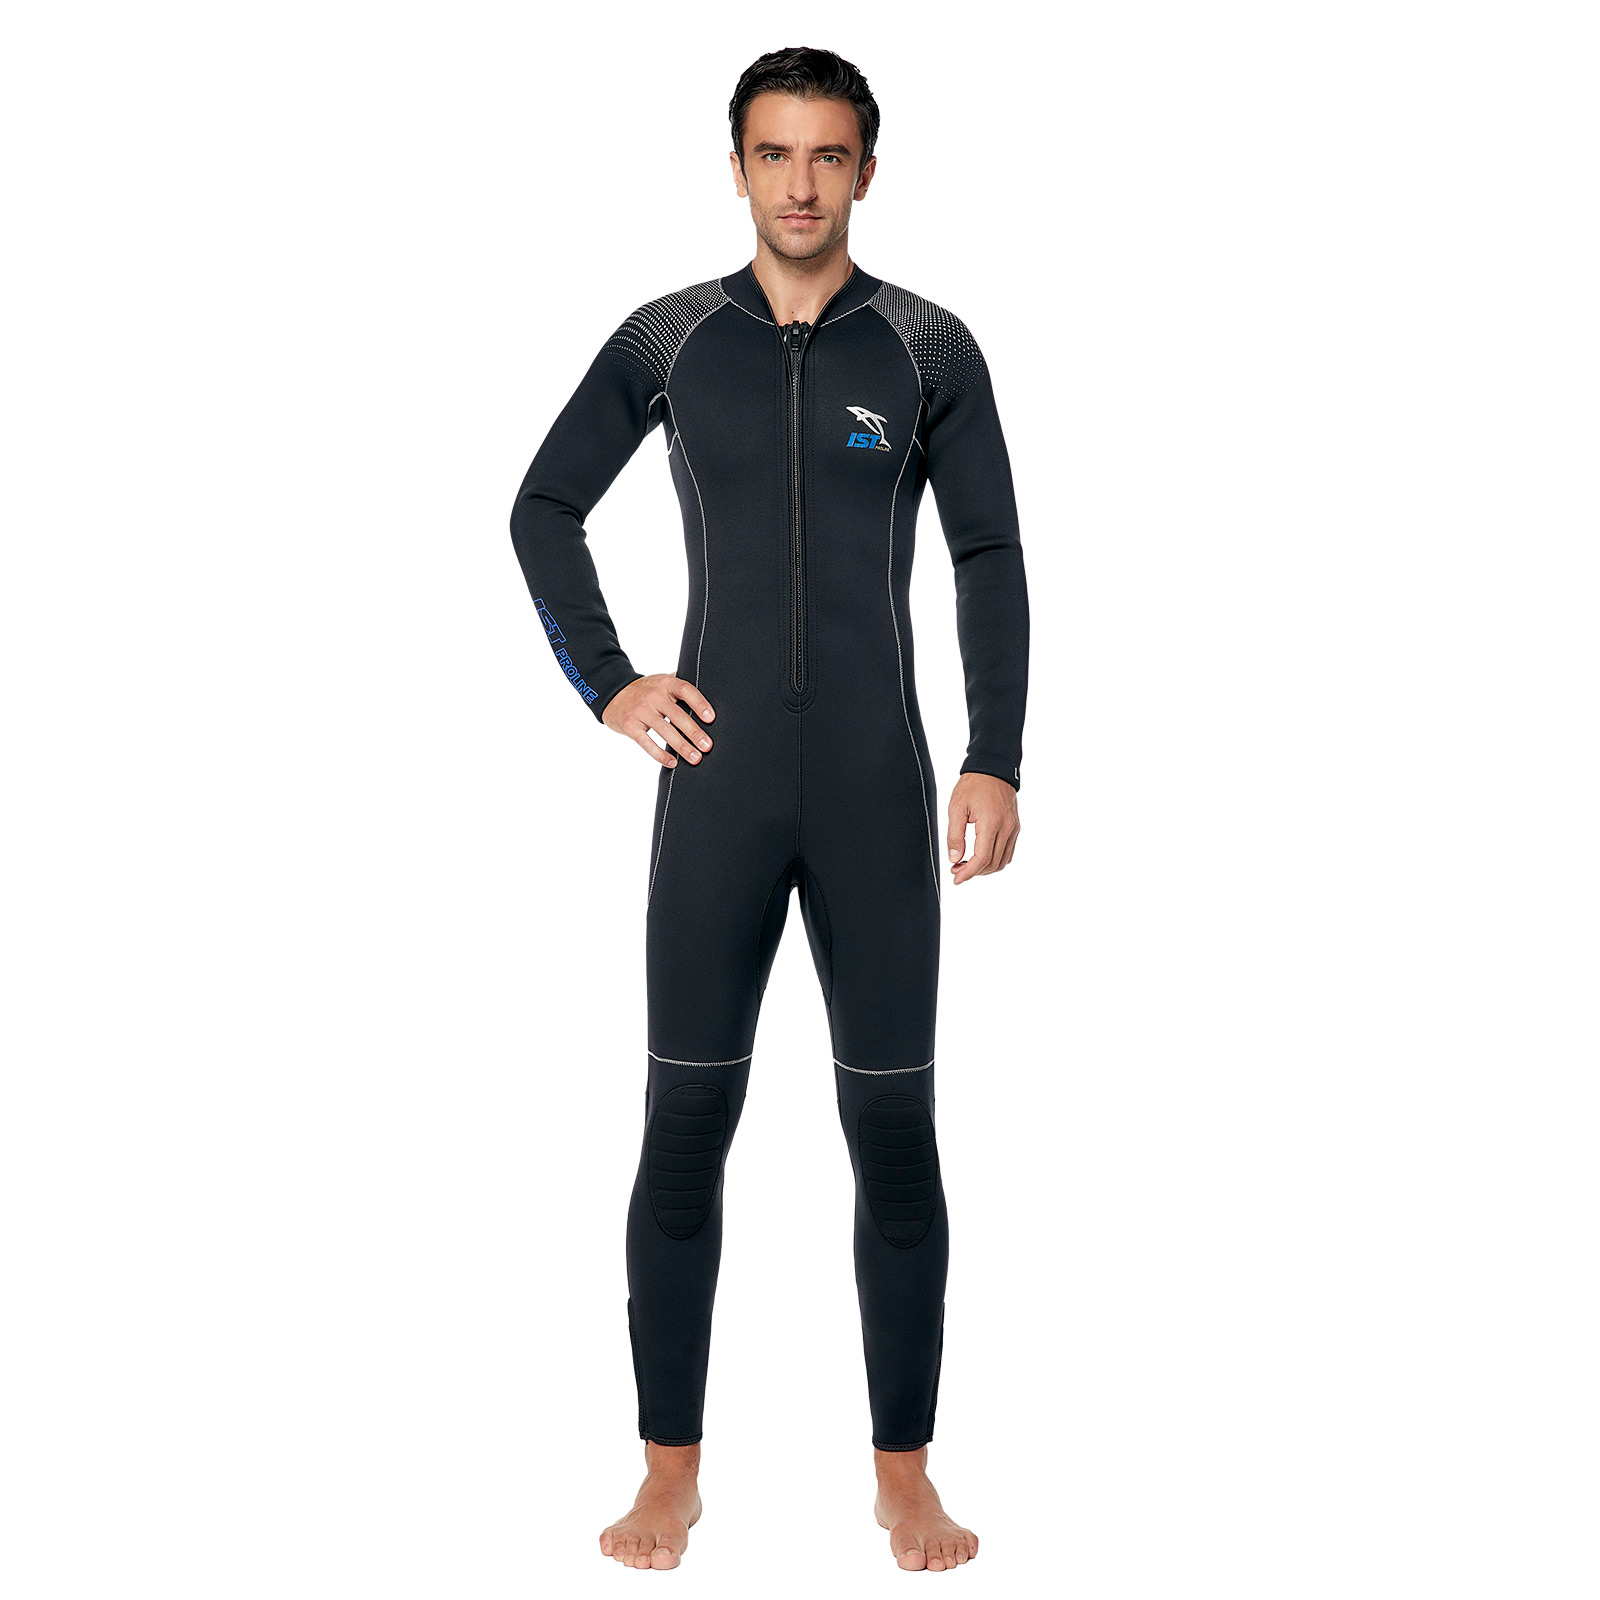 IST Diving System    RECREATIONAL    WETSUITS   DIVE SKINS    3MM Rental  Reversible Jumpsuits c856048a8